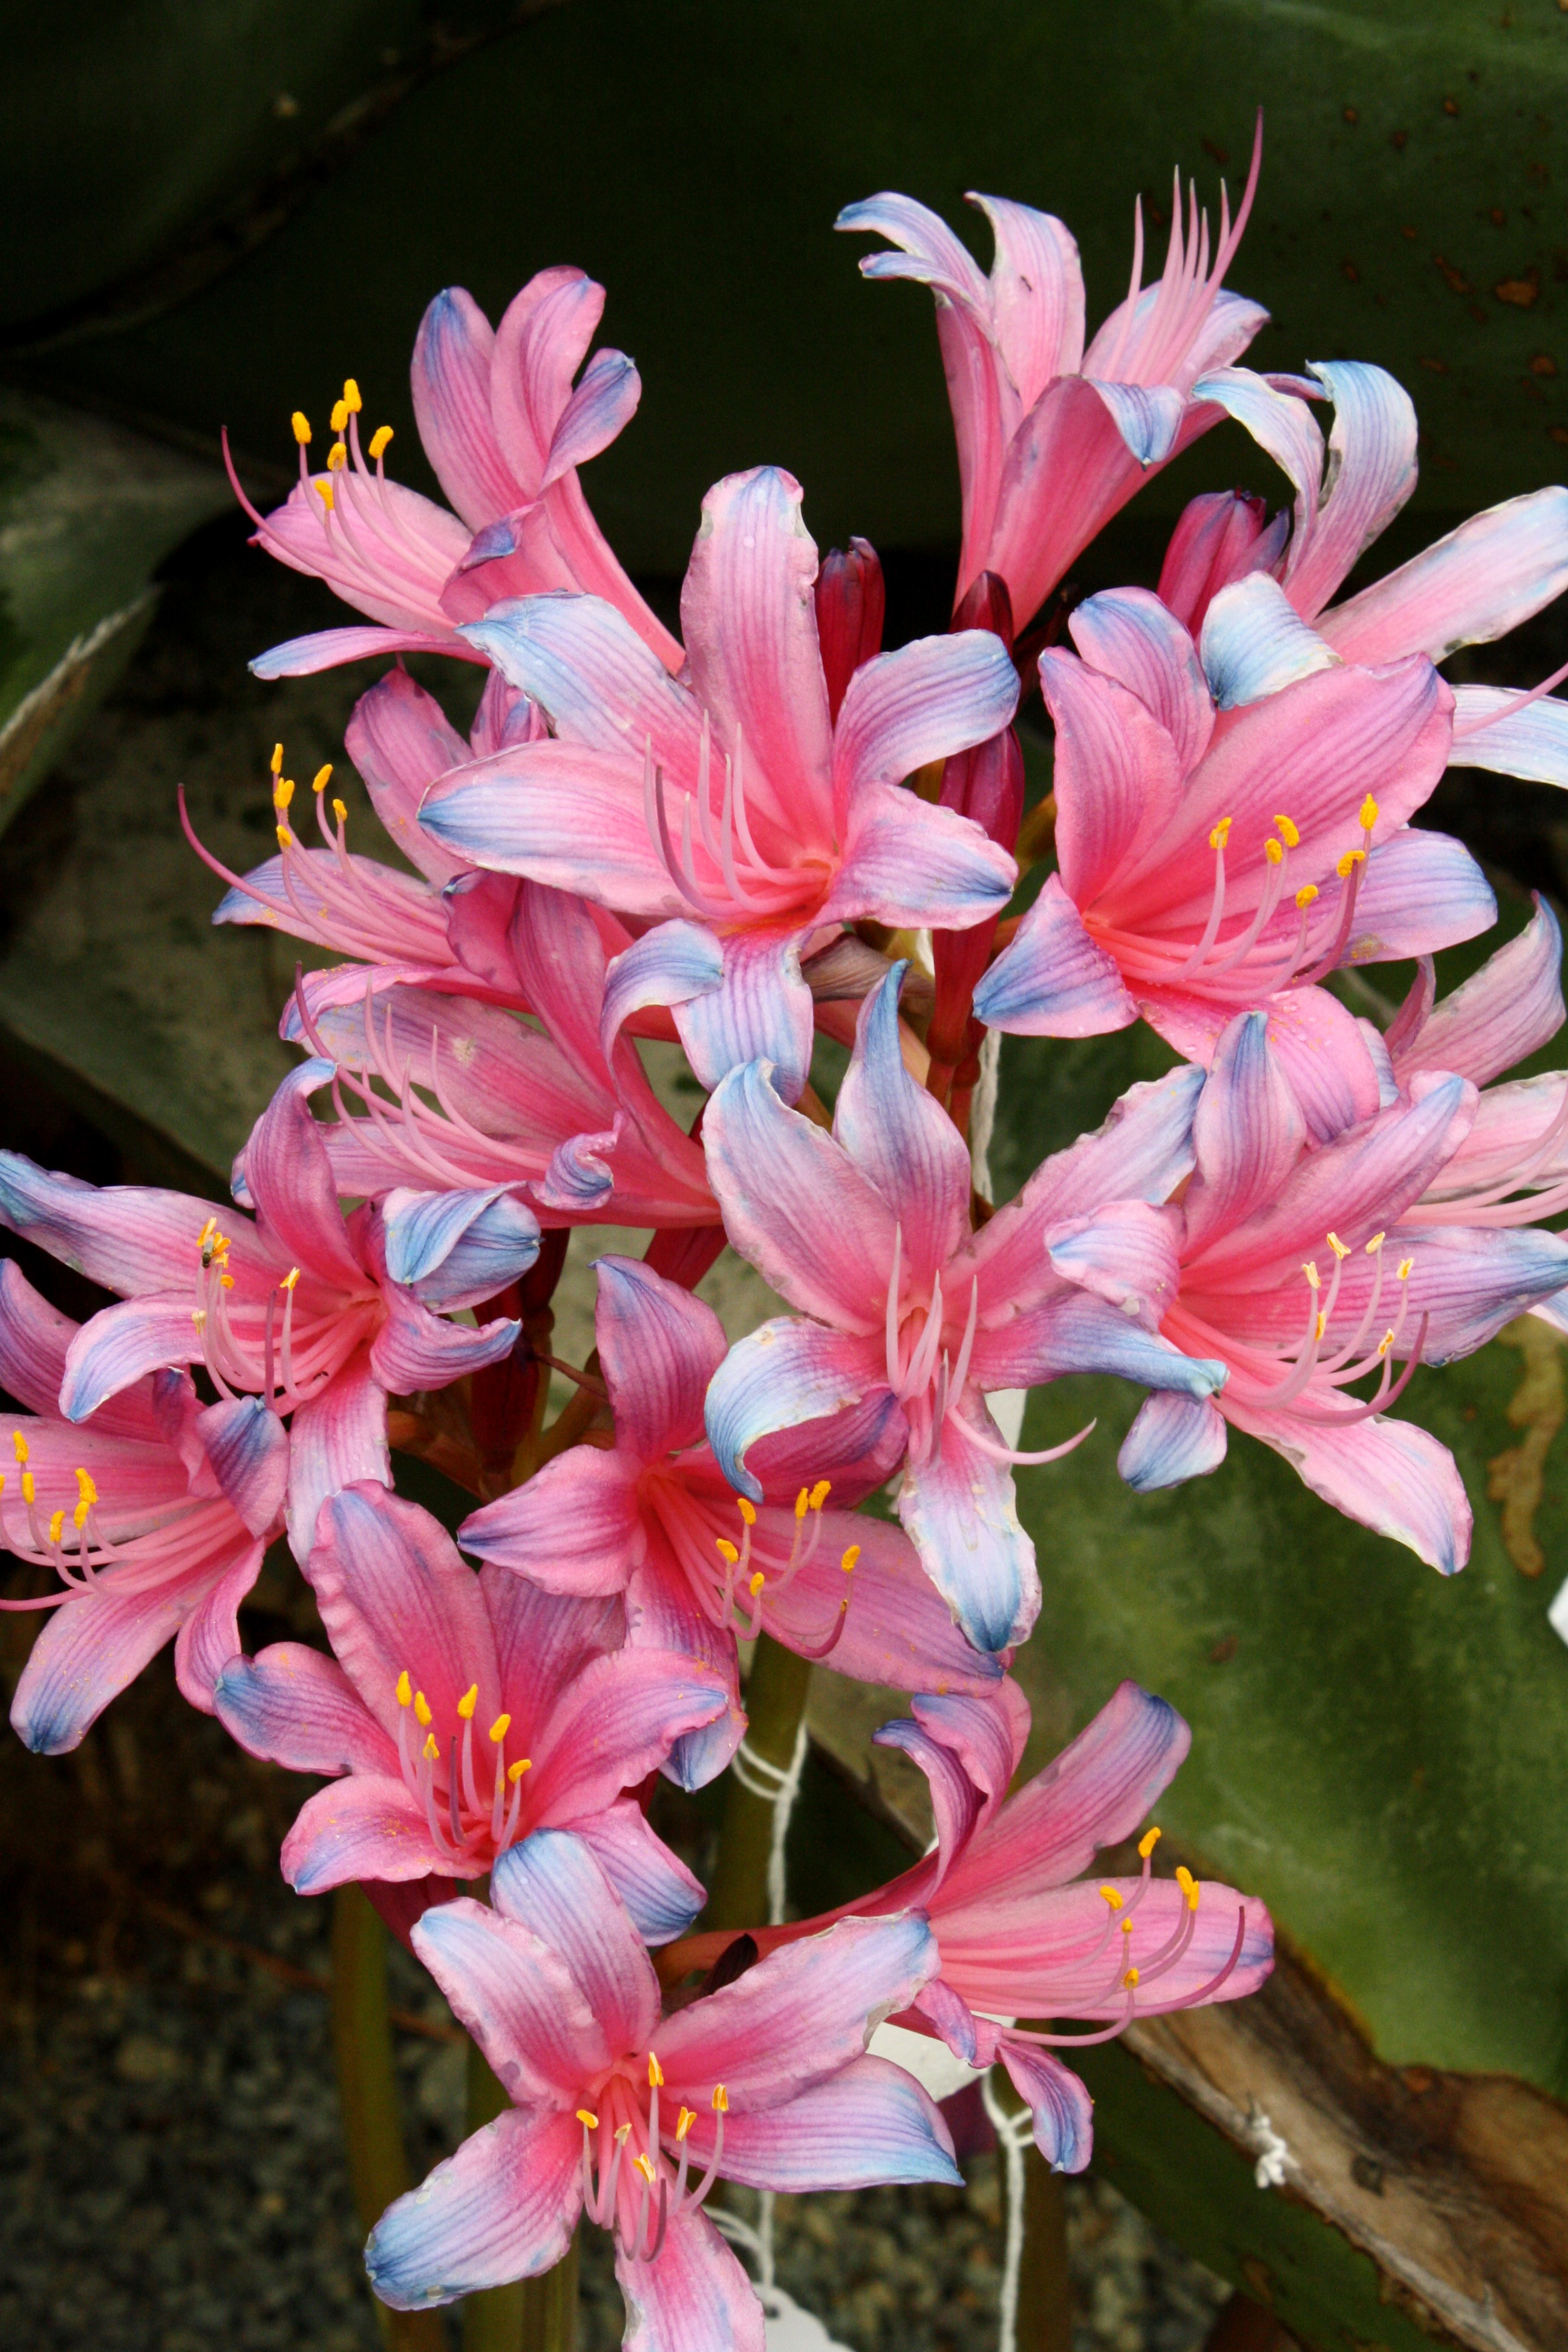 Lycoris sprengeri PDN008 @ JLBG an unnamed selection from bulbs imported from a Chinese nursery